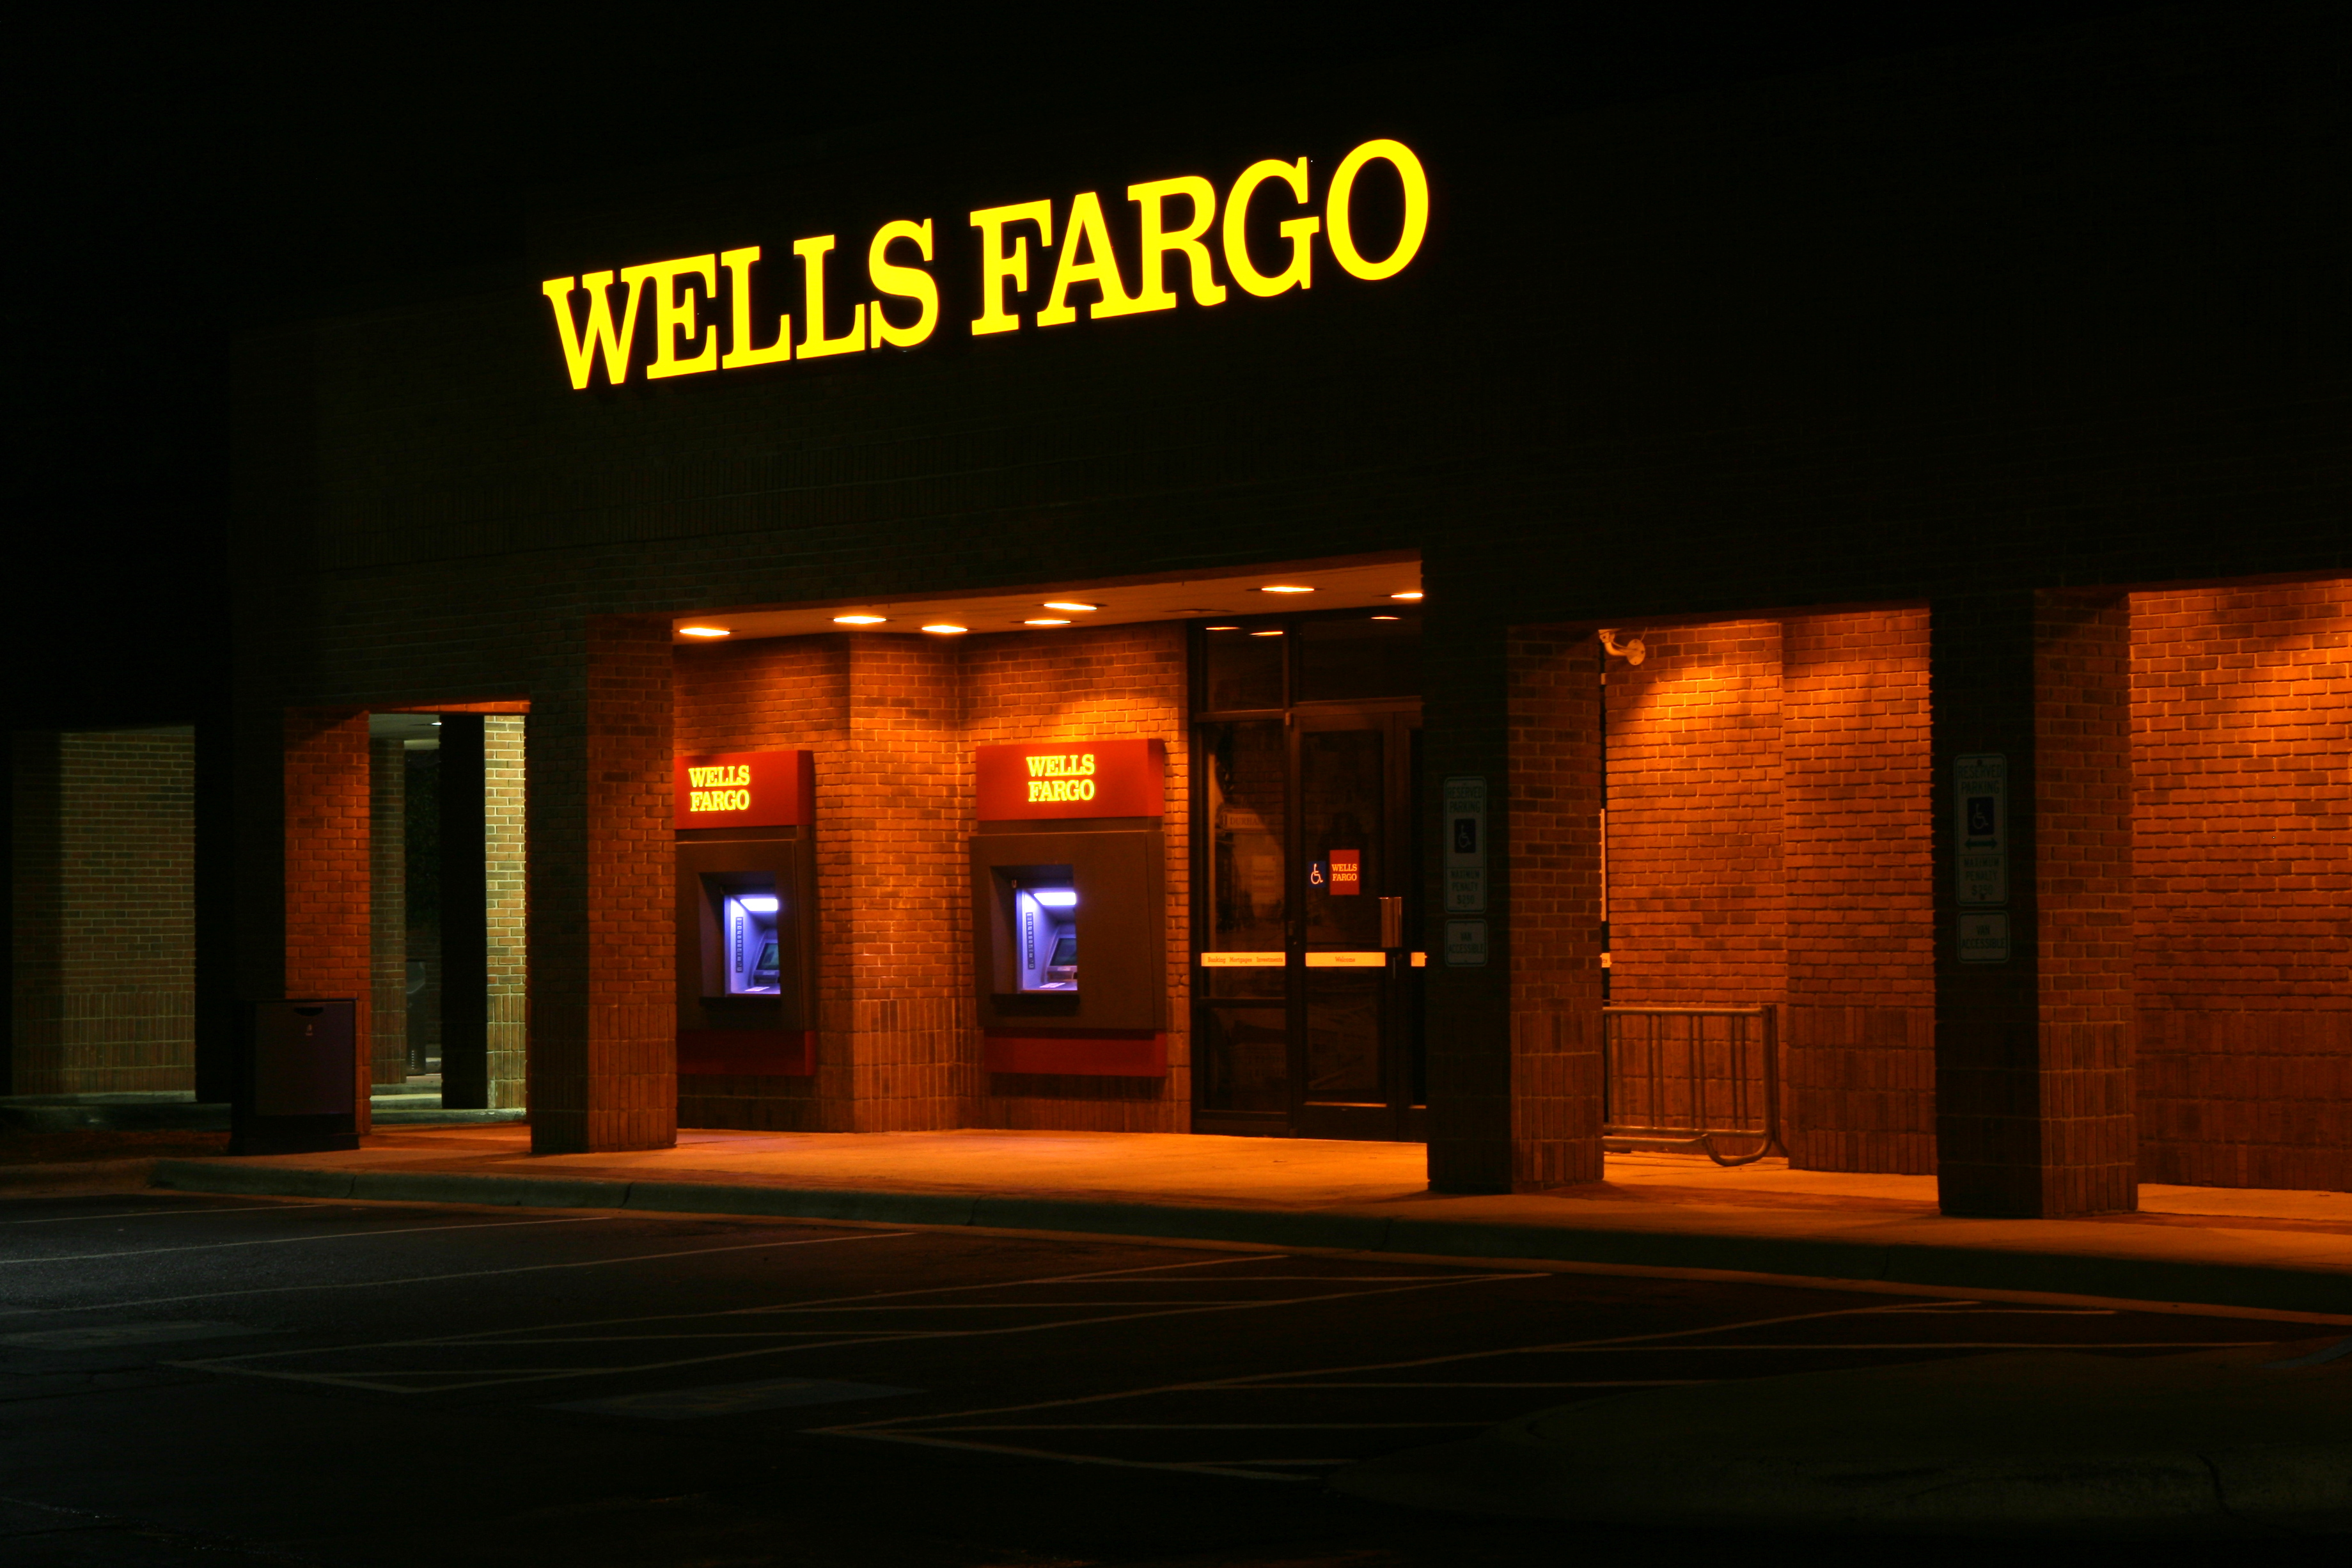 Wells Fargo Fires 5,300 Employees For Creating Fake Accounts